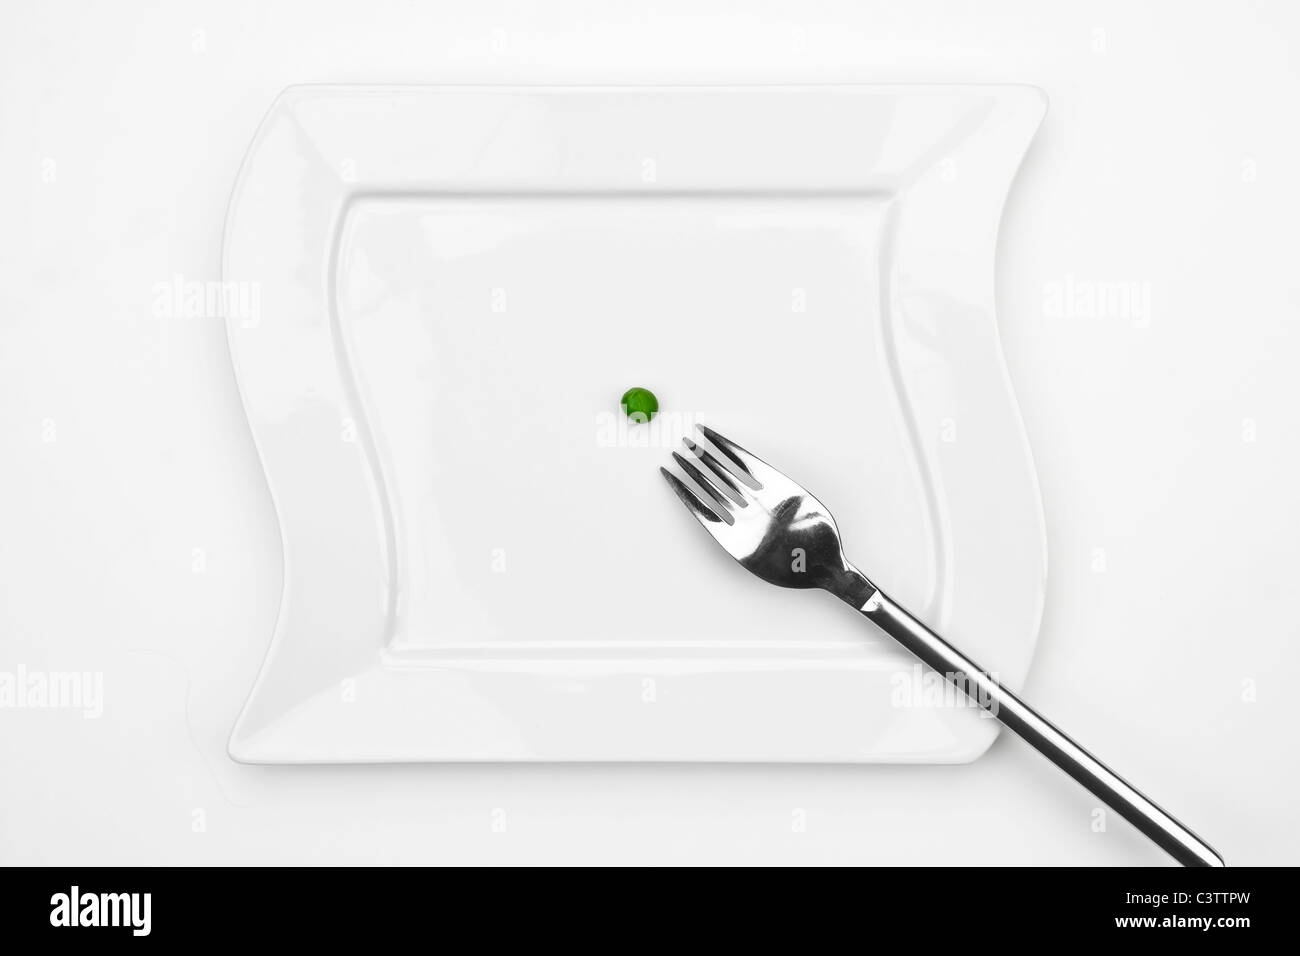 one pea on a white plate with a fork - Stock Image